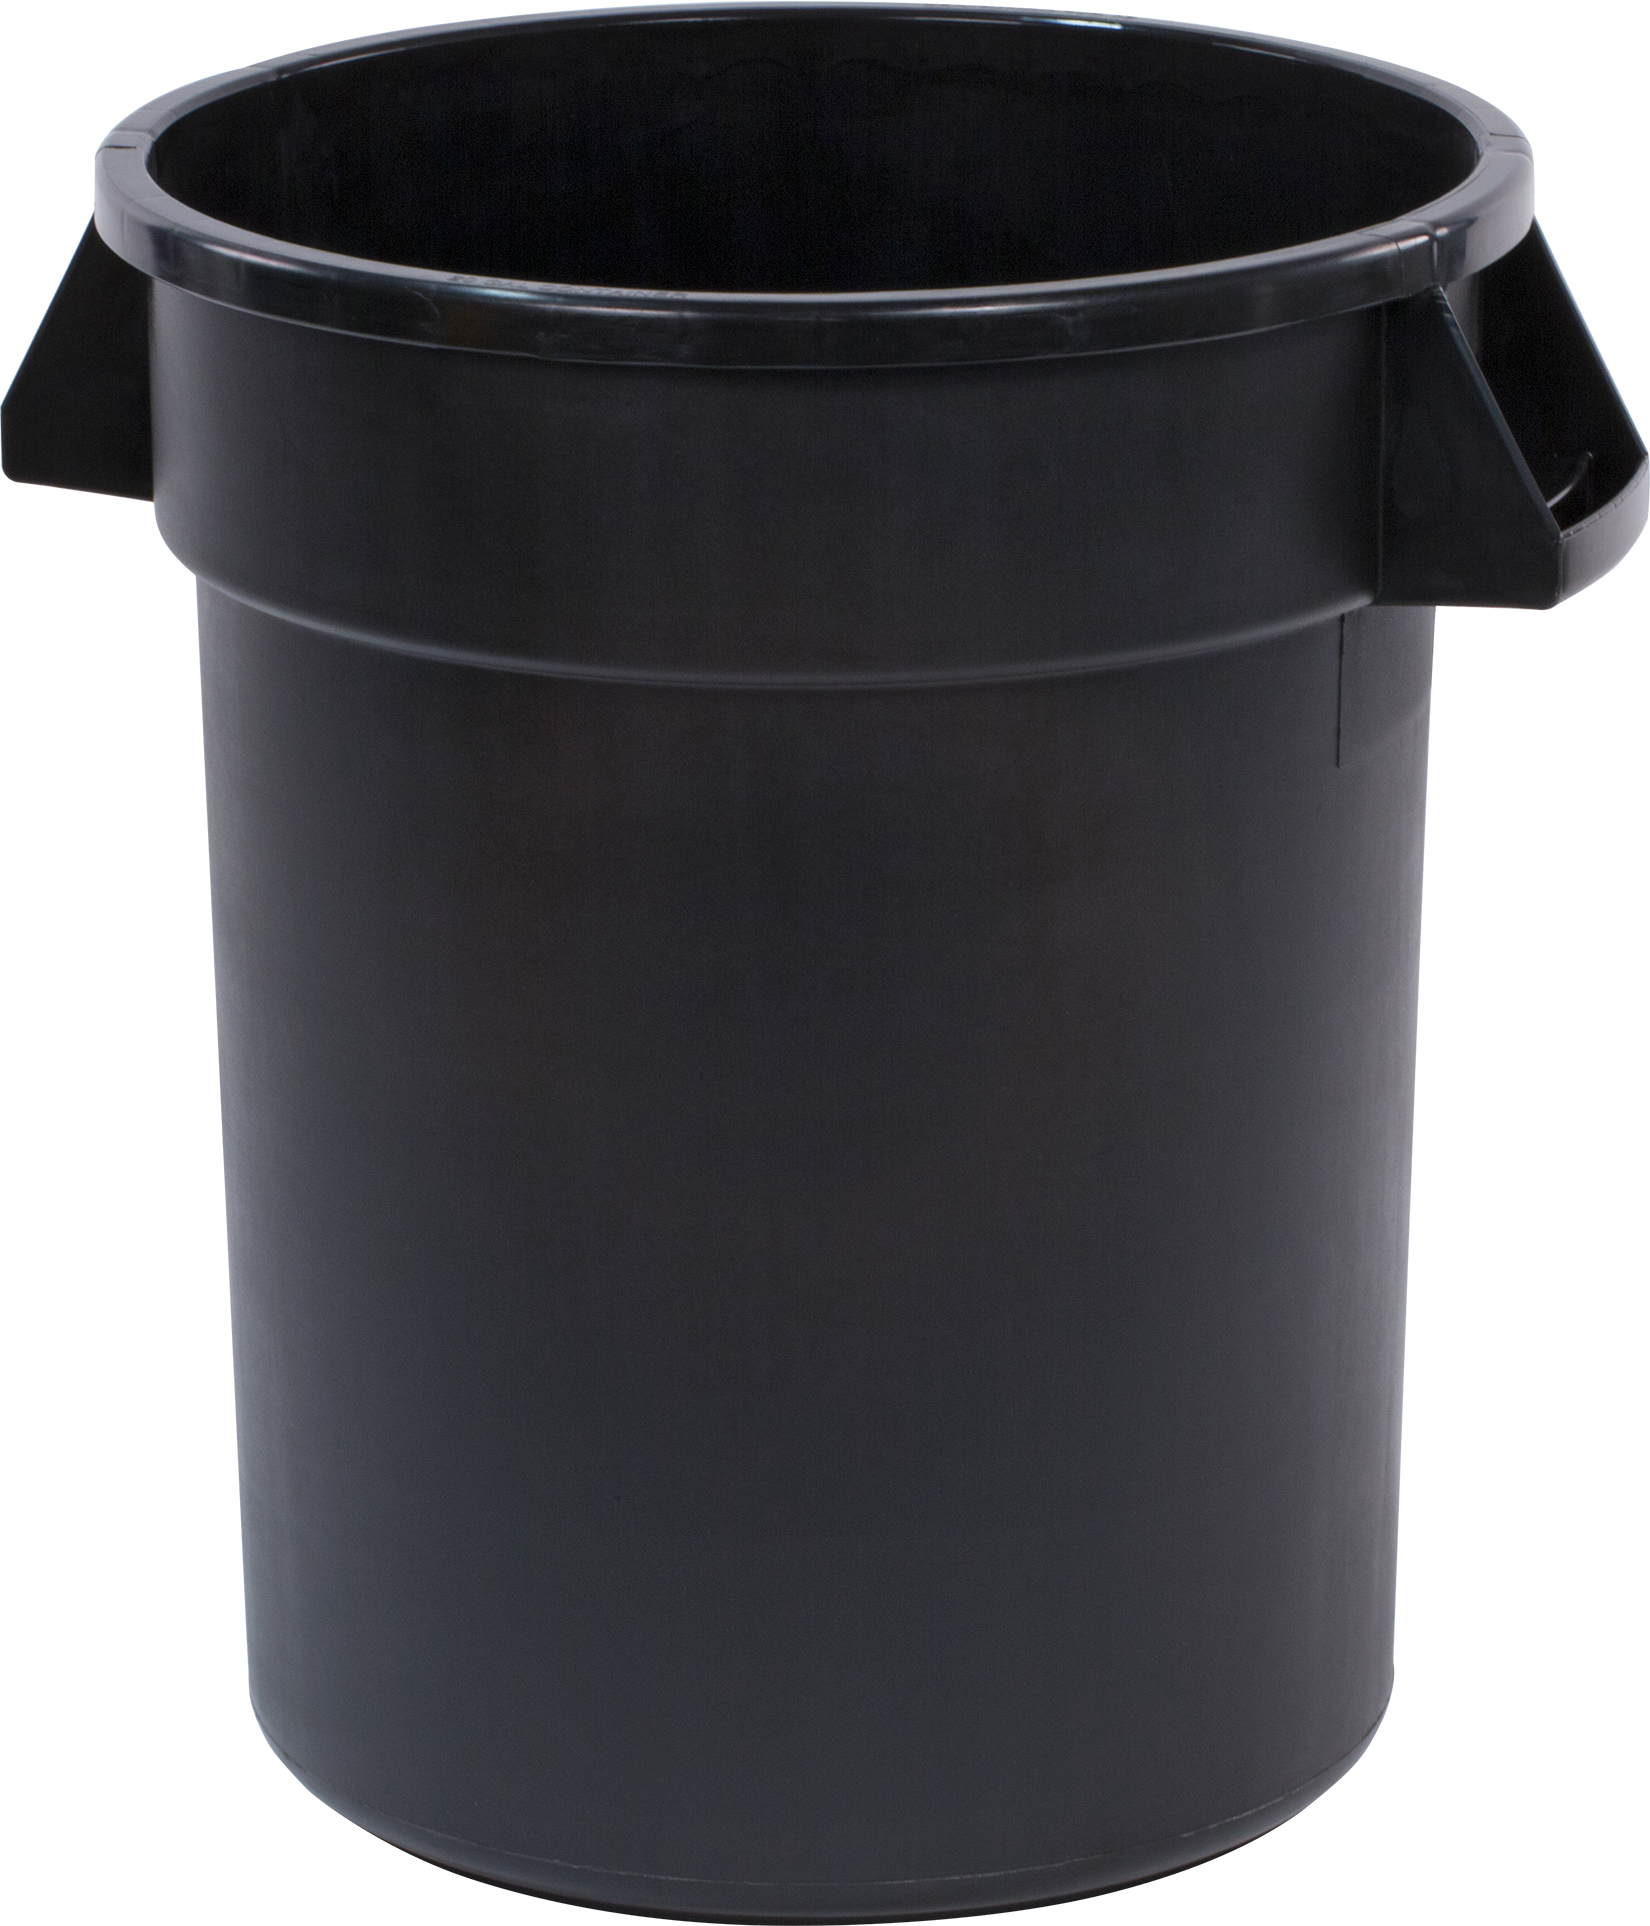 Bronco Round Waste Bin Food Container 20 Gallon - Black